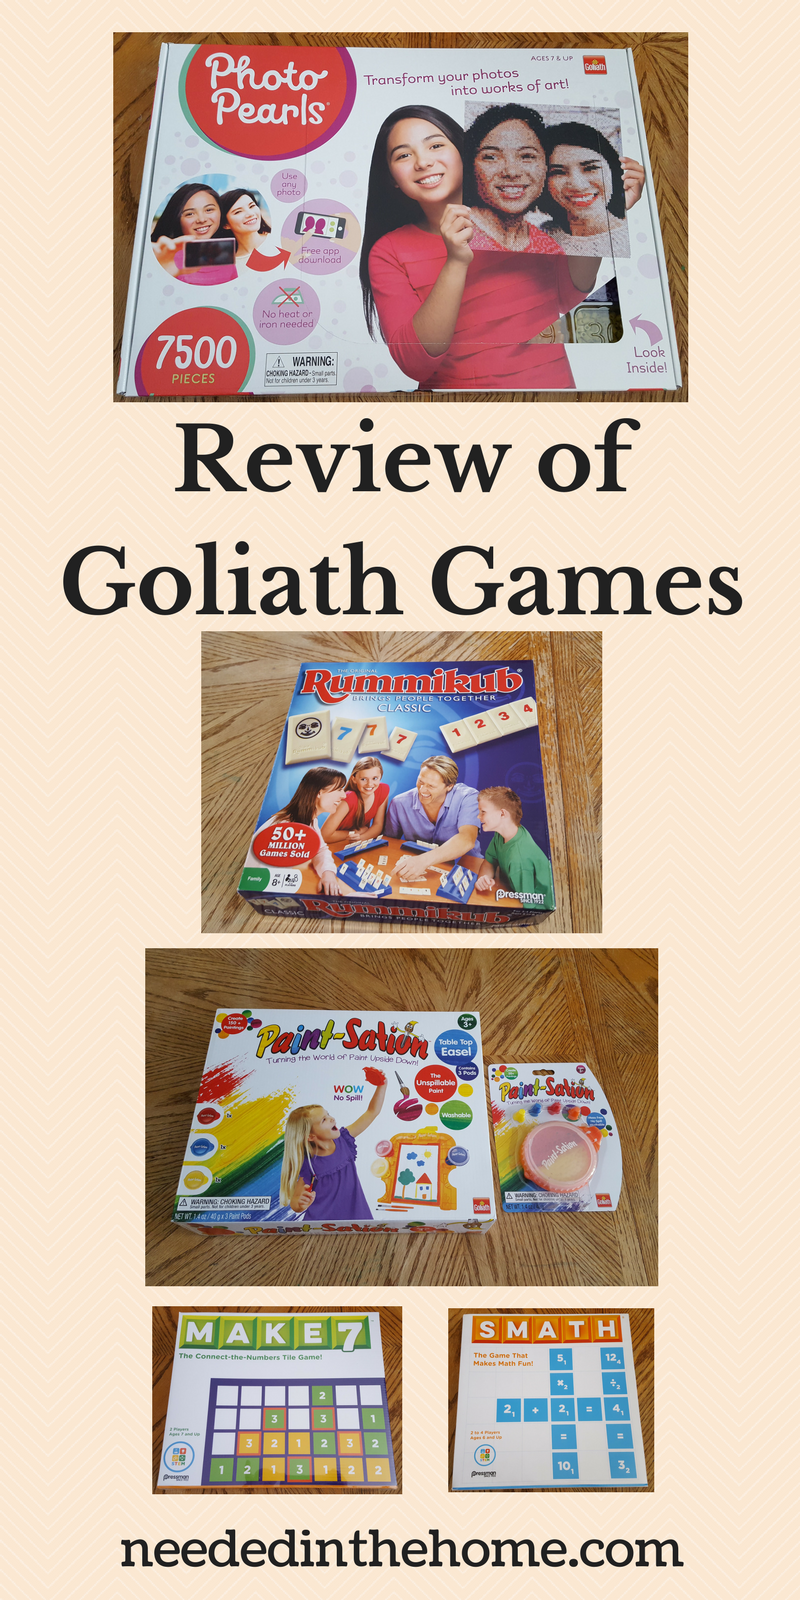 Product Review of Goliath Games - Photo Pearls Rummikub Paint-Sation Make7 Smath neededinthehome